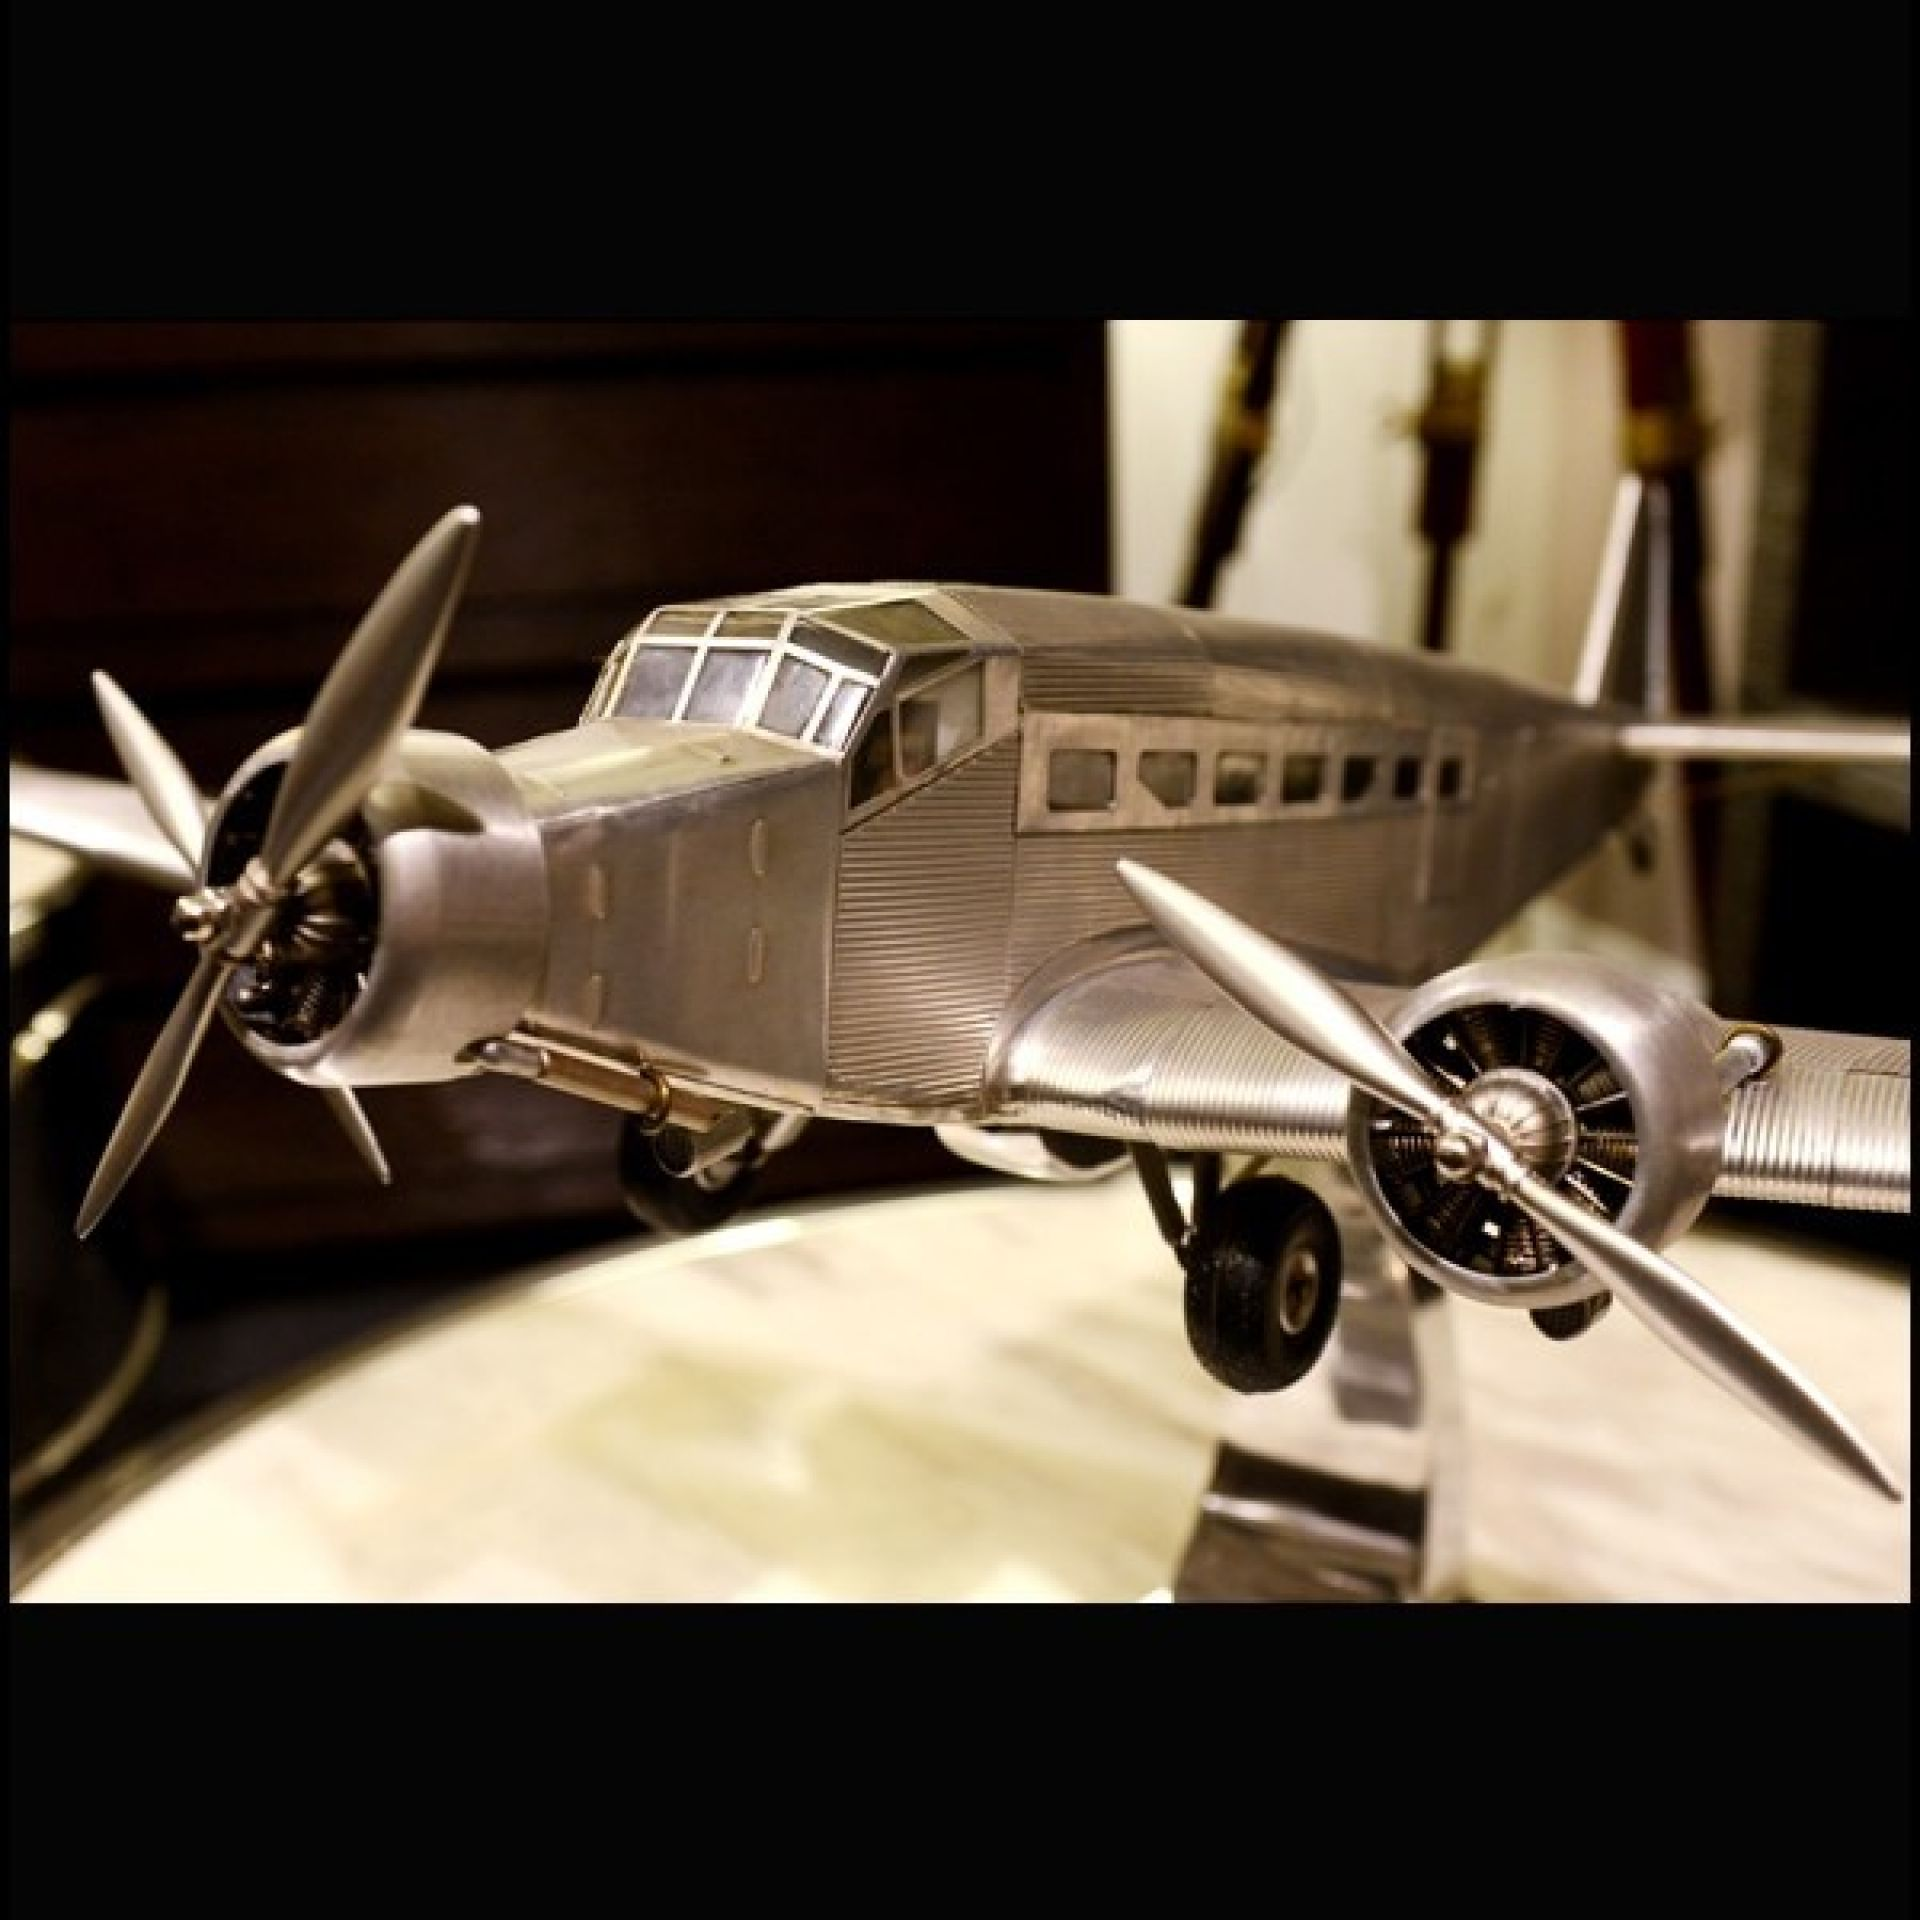 JUNKER MODEL JU52 MODEL MODEL MADE BY HAND IN ALUMINUM FOIL 113-JU52